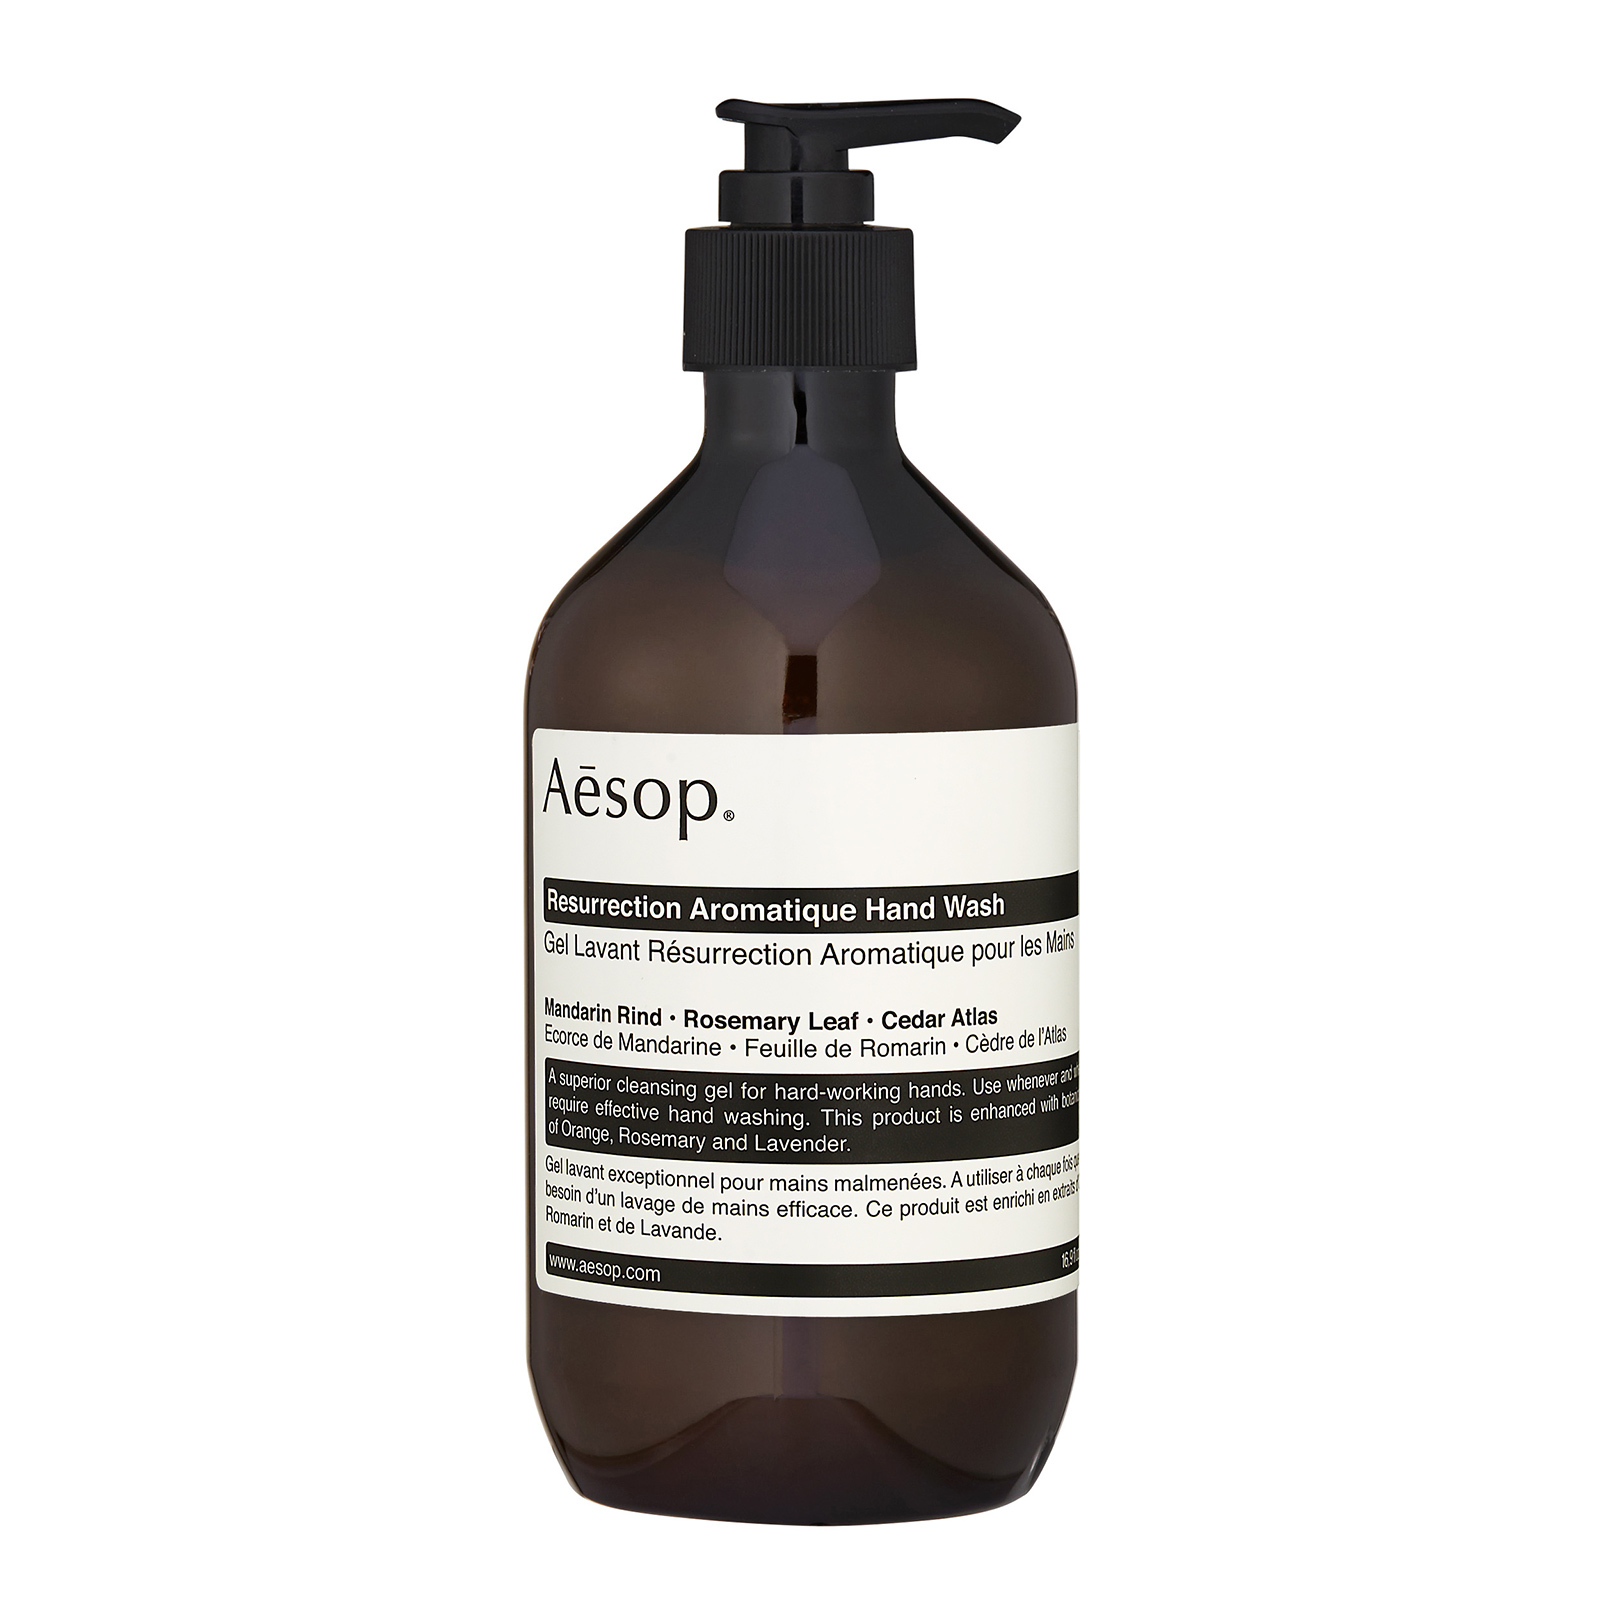 Aesop Resurrection Aromatique Hand Wash has the following features:A superior cleansing gel for hard-working hands. This globally adored product gently cleanses without dehydrating skin. Ideal for labour-wearied hands that are frequently washed.